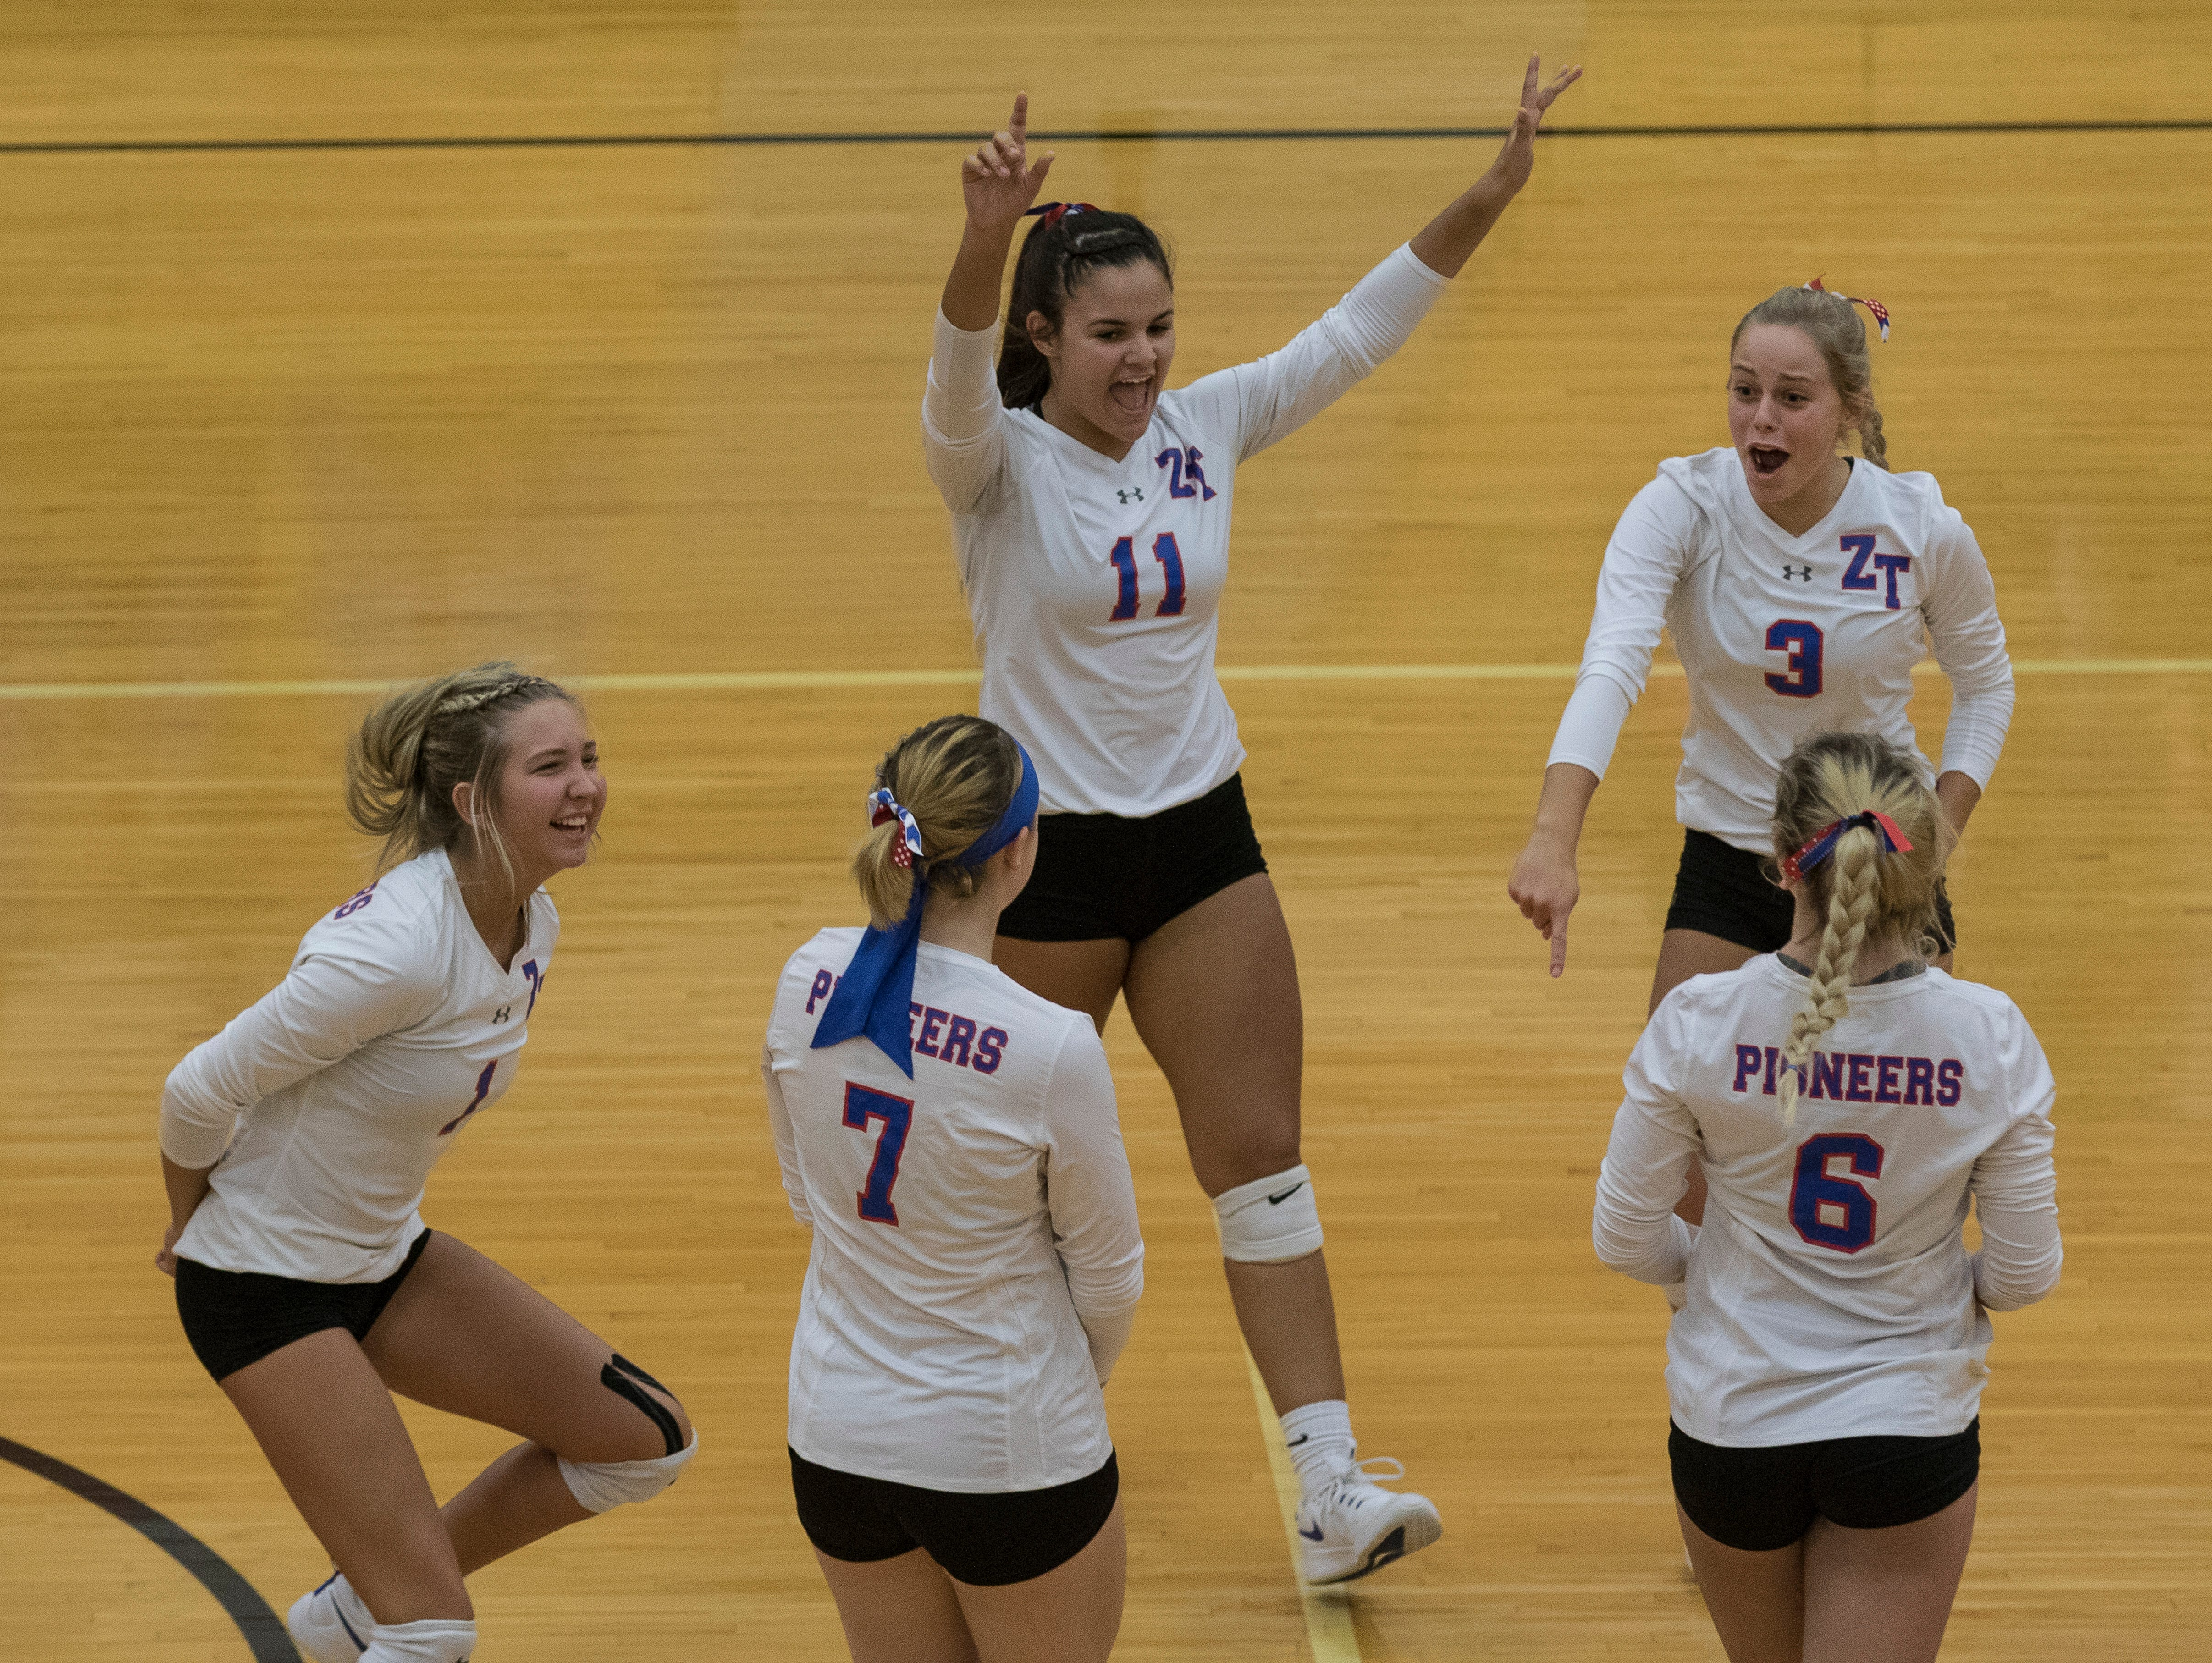 The Zane Trace girls volleyball team celebrate after winning their first set against North Adams Wednesday night 3-0 at Waverly High School.